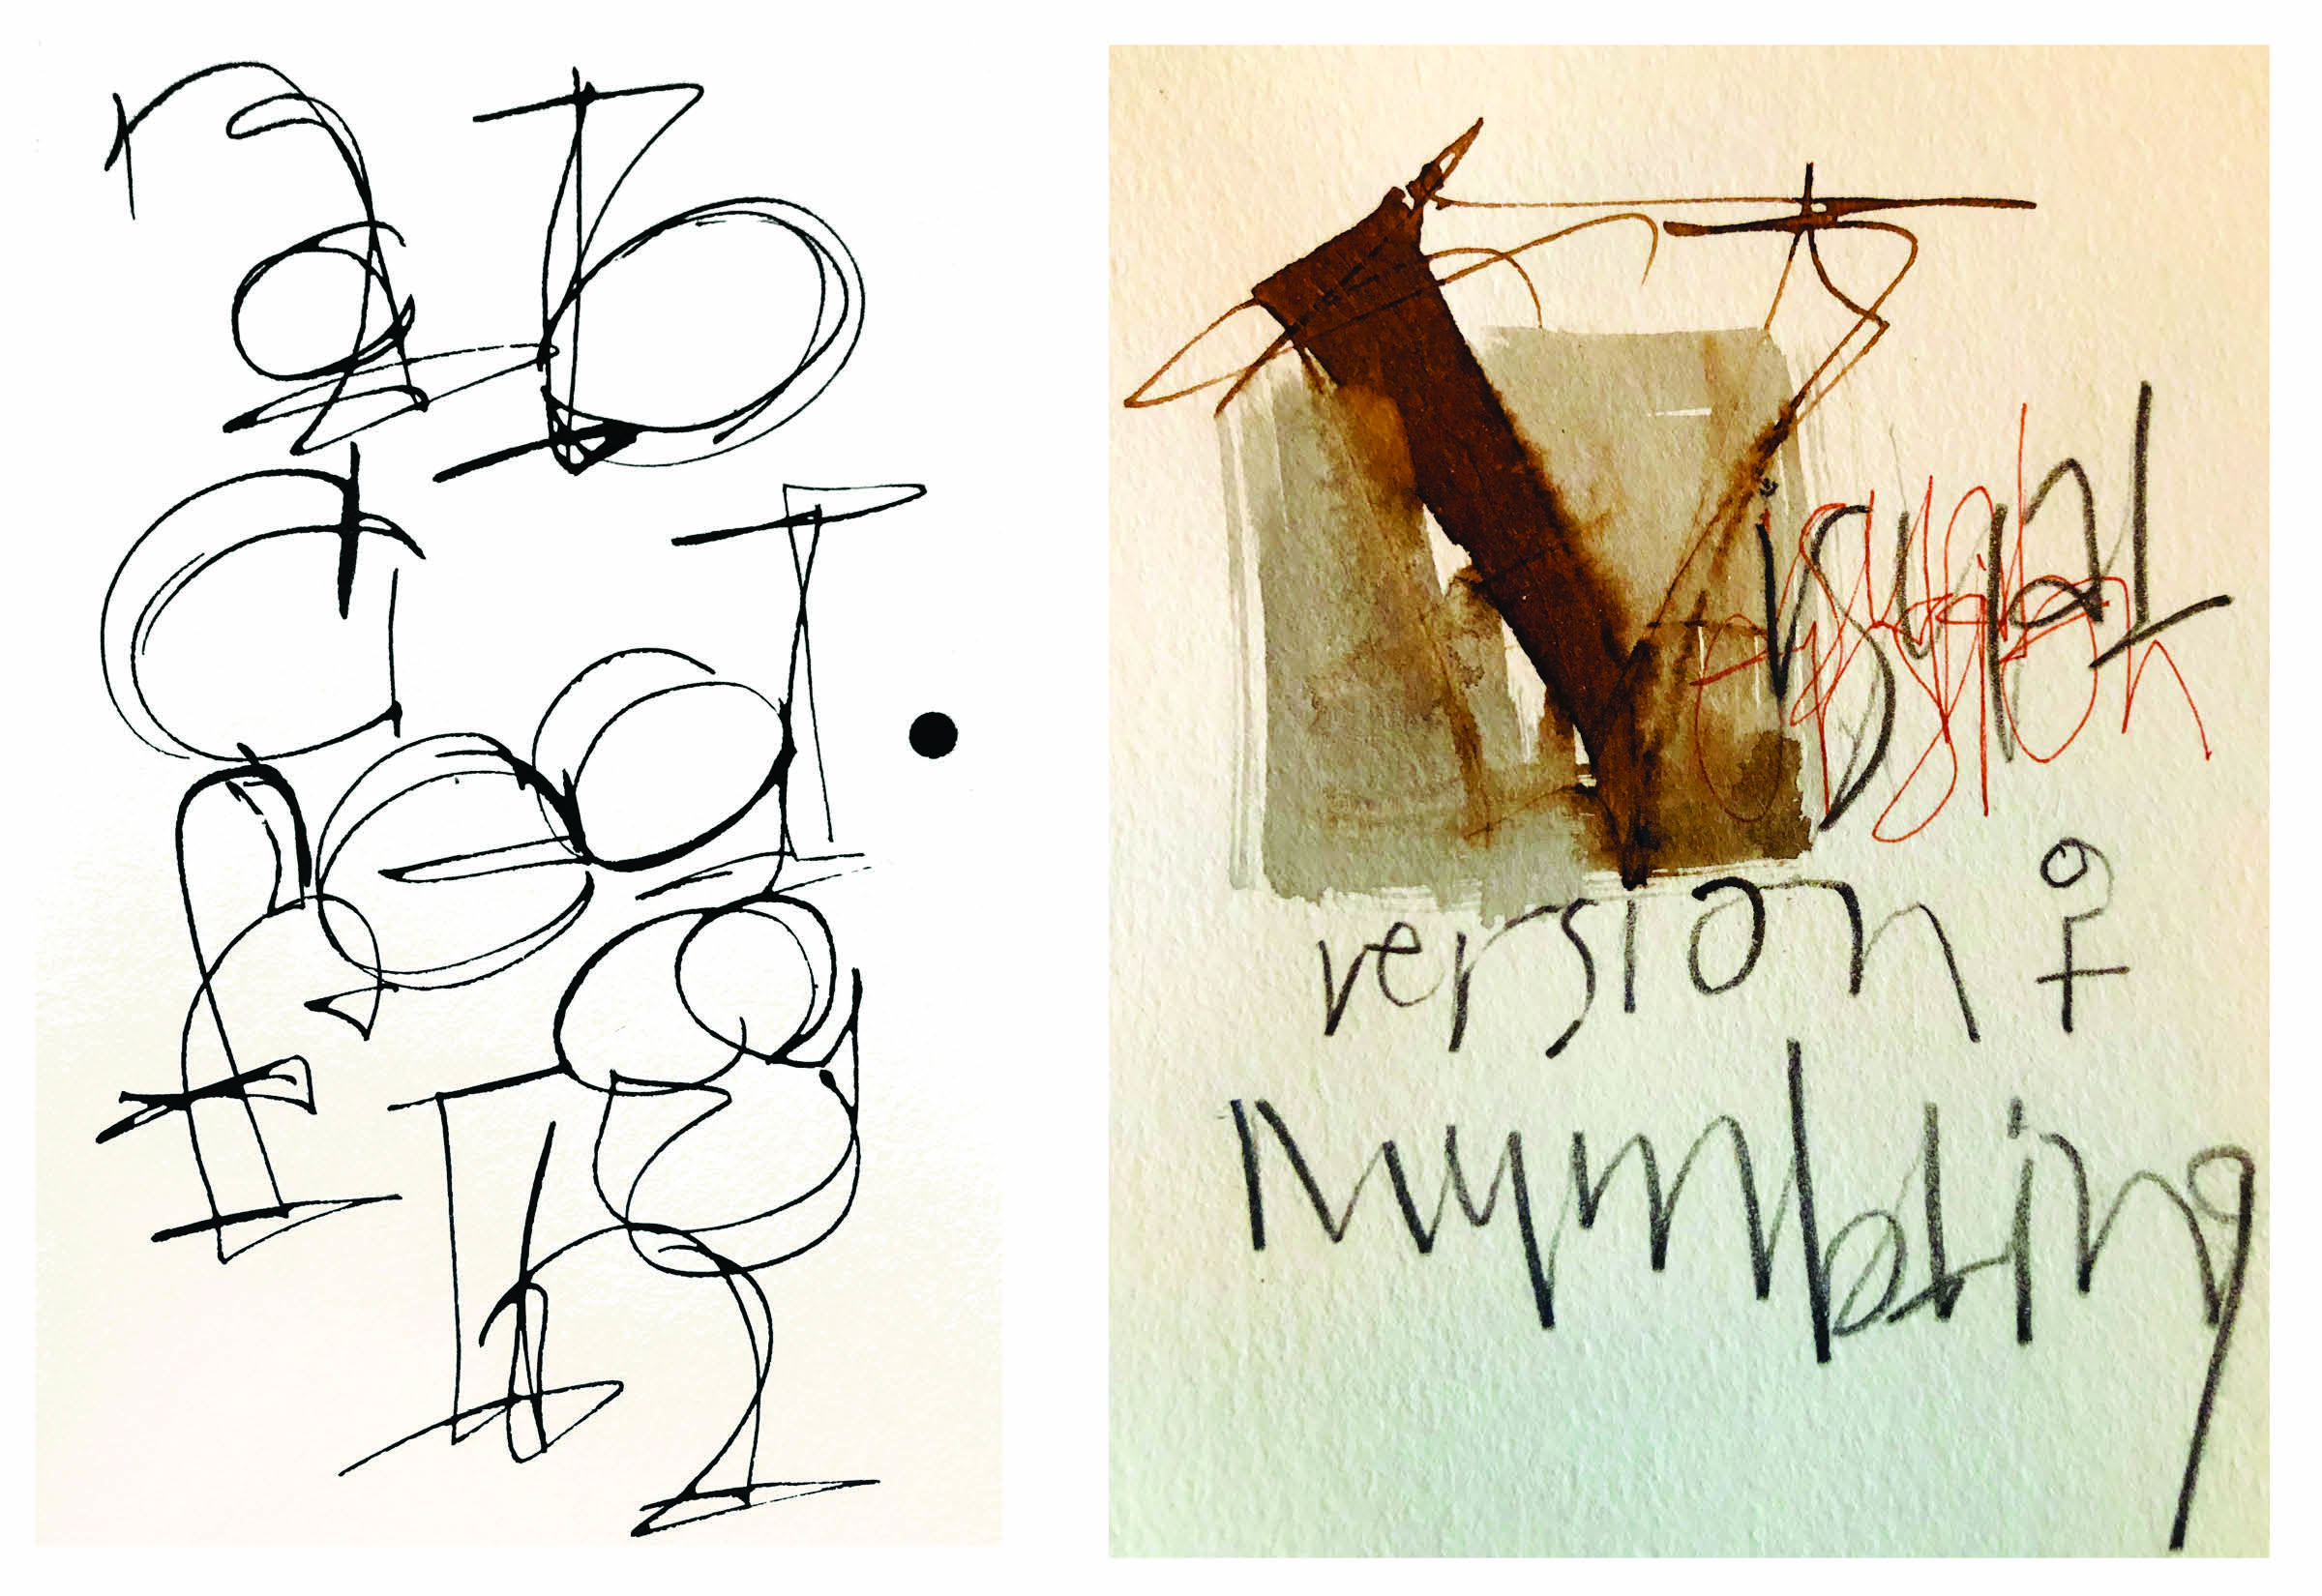 Writing with my eyes closed:  (left) alphabet with sumi ink and the edge of an automatic pen (right)  visual version of mumbling:  walnut and sumi ink, automatic pen, red felt pen & pencil